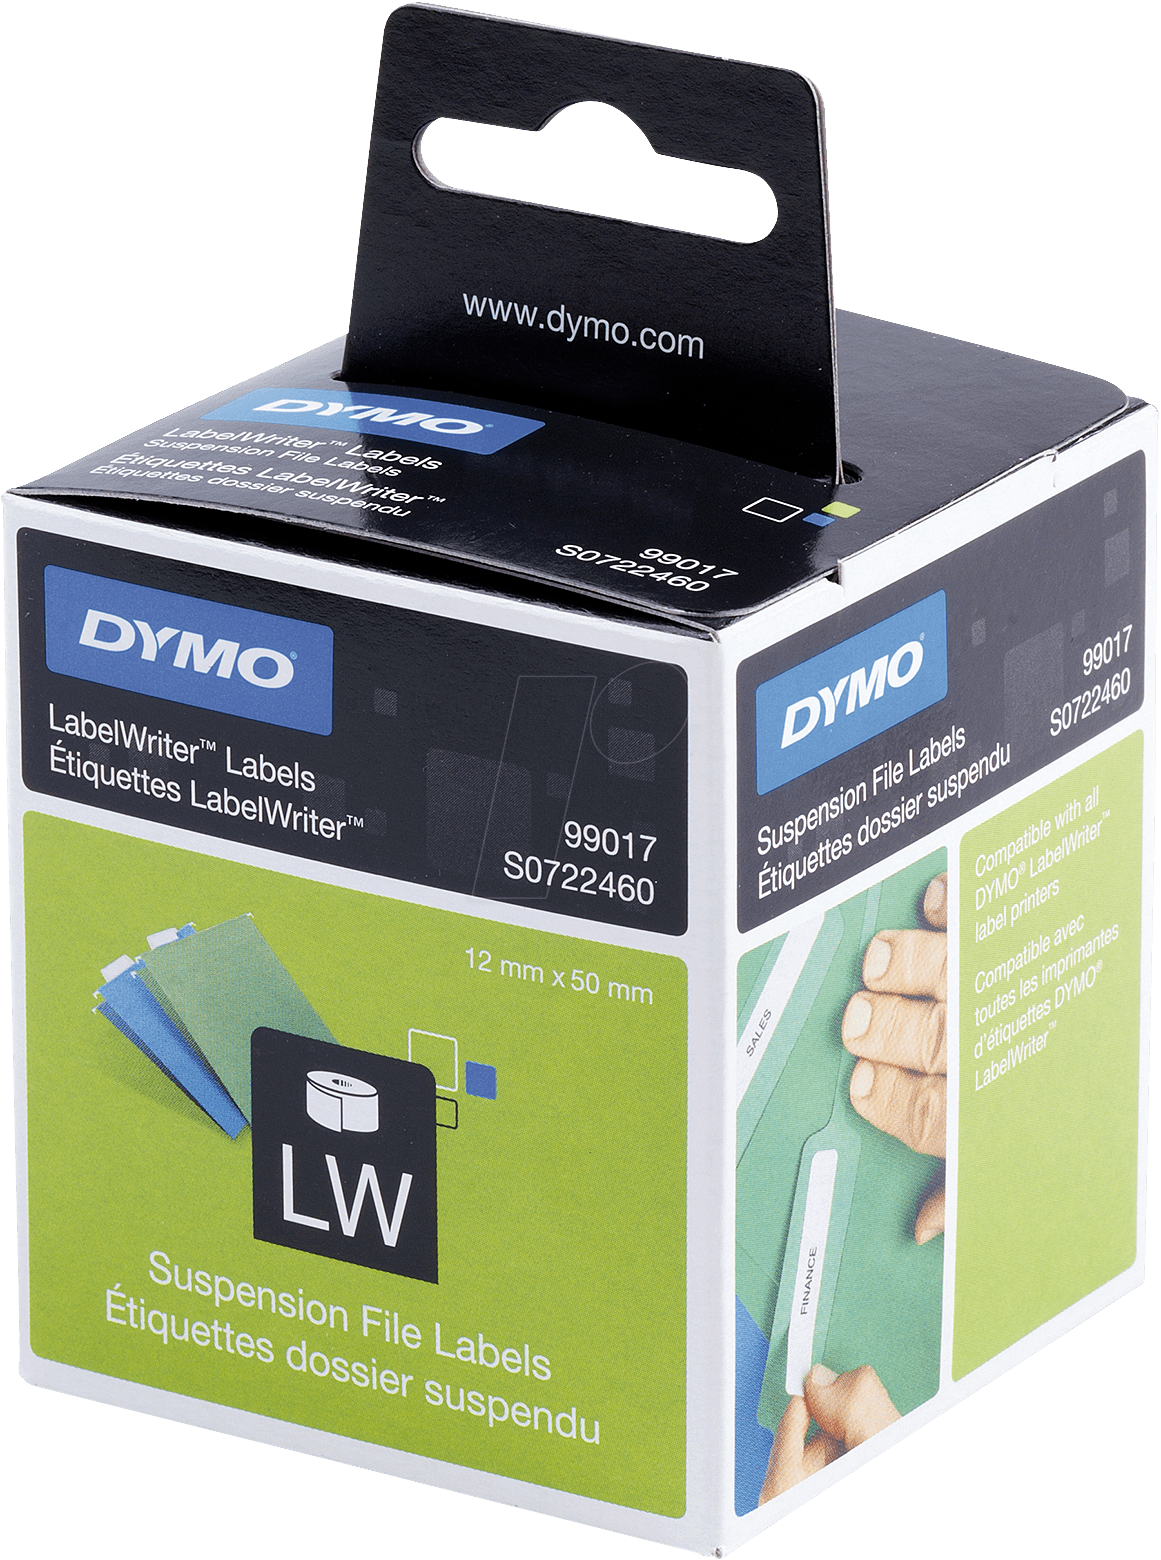 Dymo lw 99017 dymo labels for labelwriter 12 x 50 mm at for Dymo label stickers